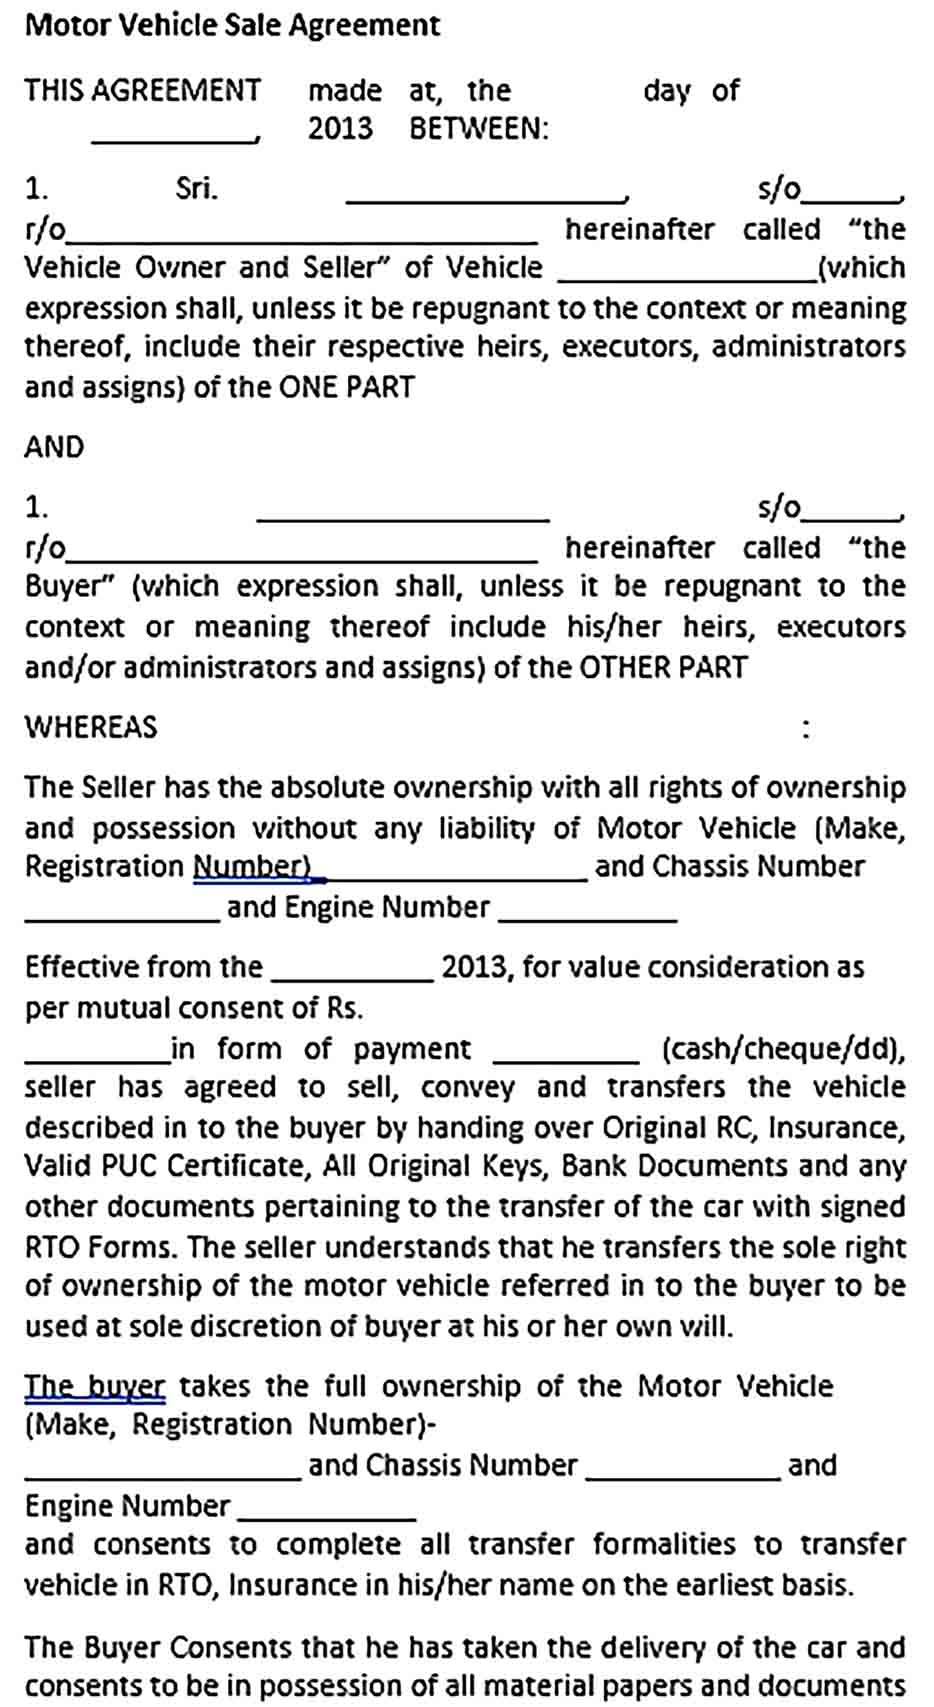 Sample Motor Vehicle Sale Agreement